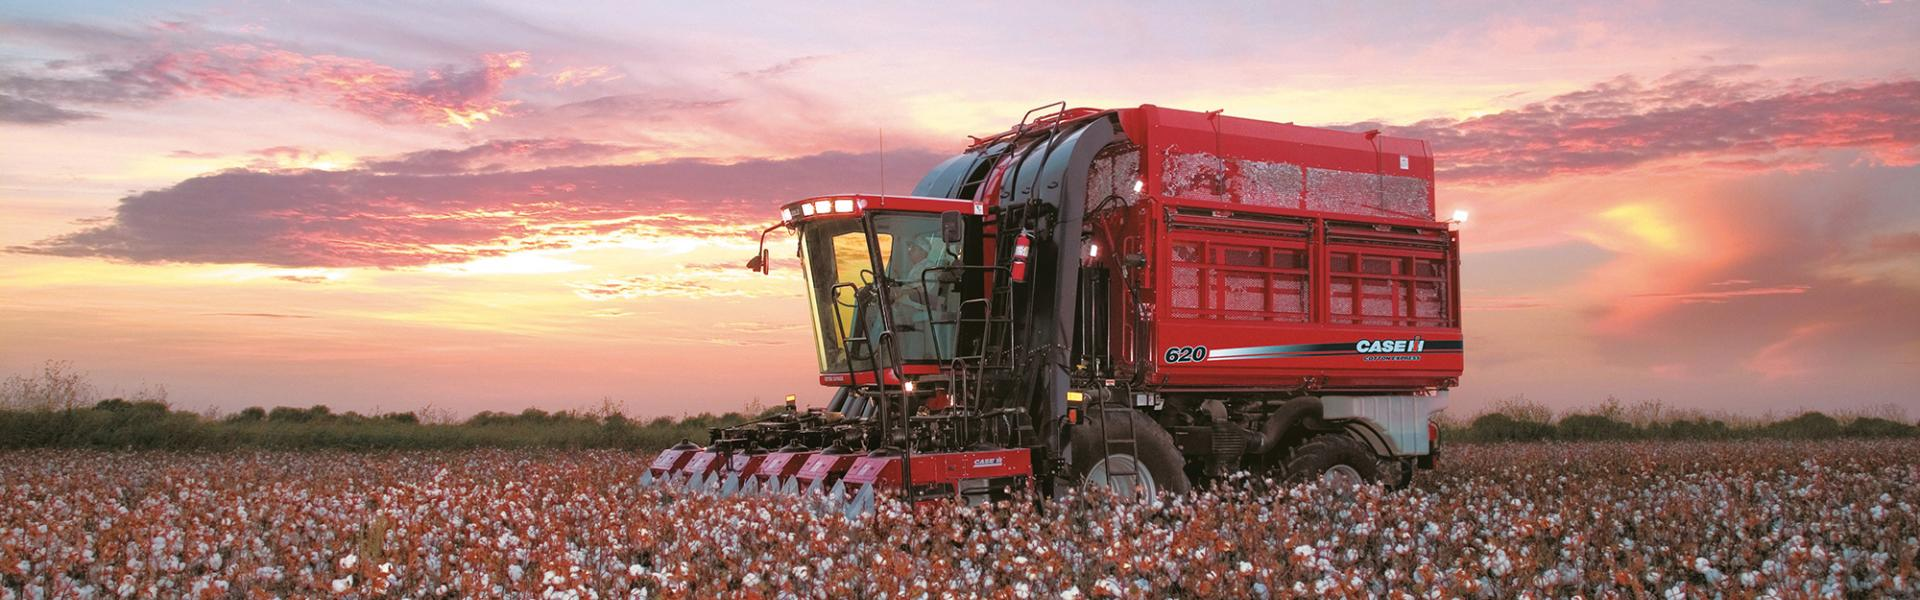 Case IH Cotton Harvester in the sunset